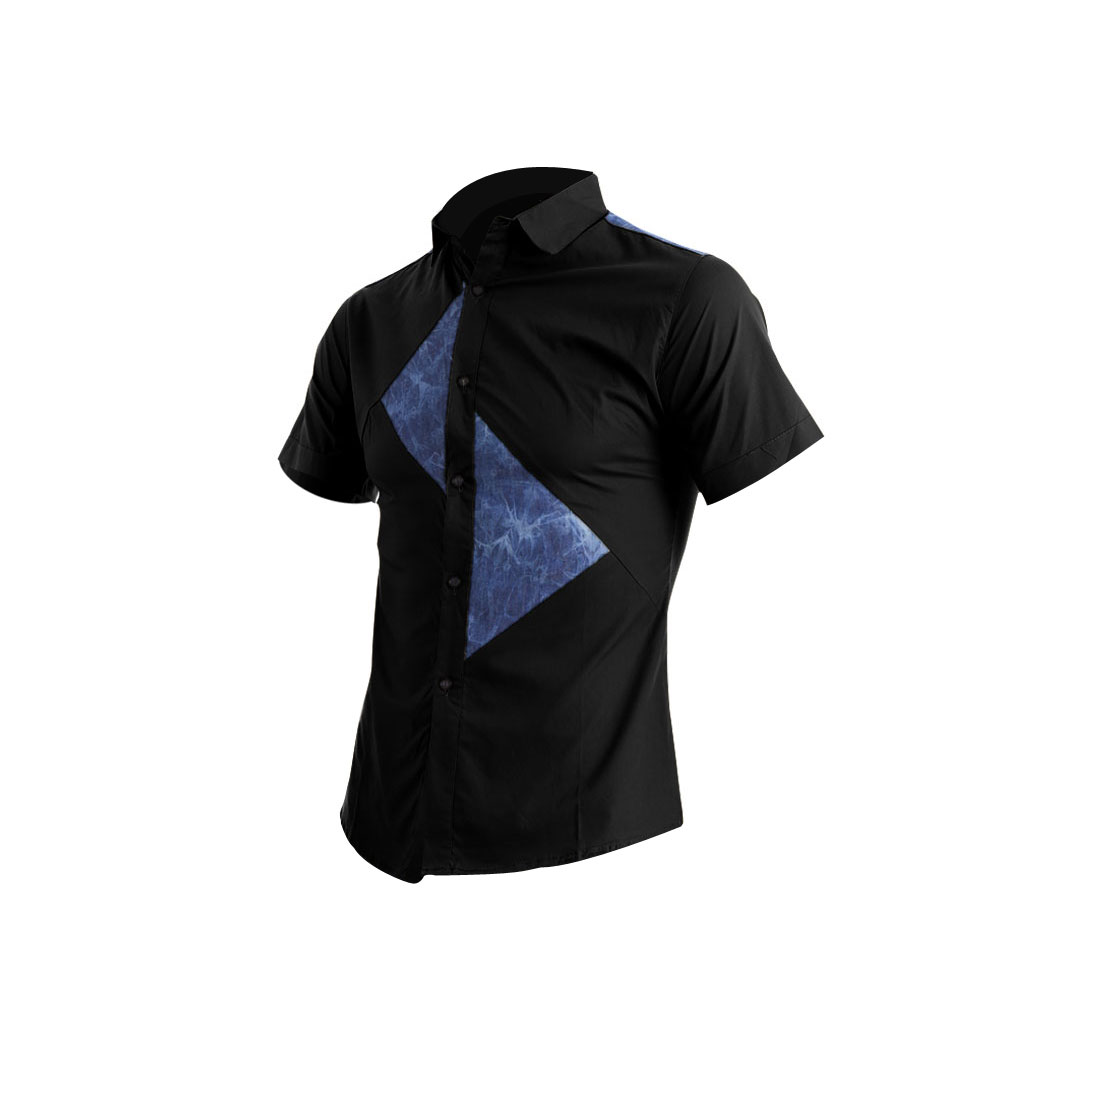 Men Single Breasted Buttons Front Triangle Design Tops Black S